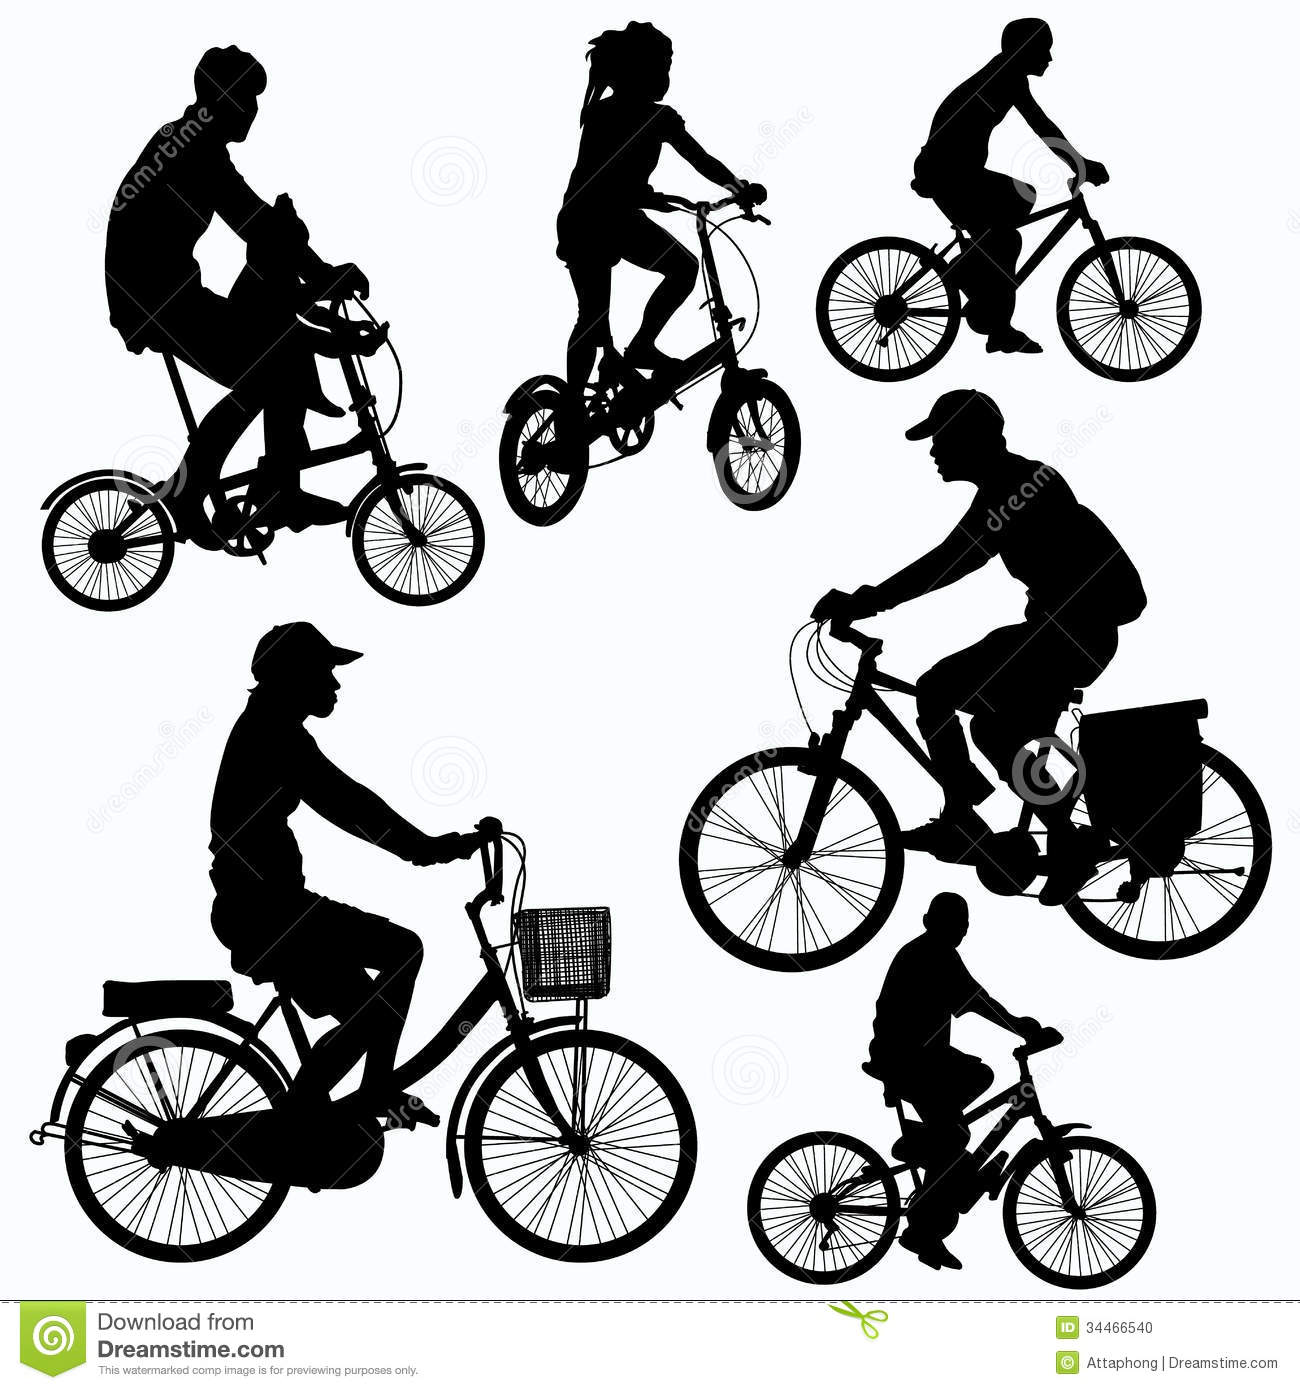 Bicycle Ride Silhouettes Vector Stock Vector - Image: 34466540